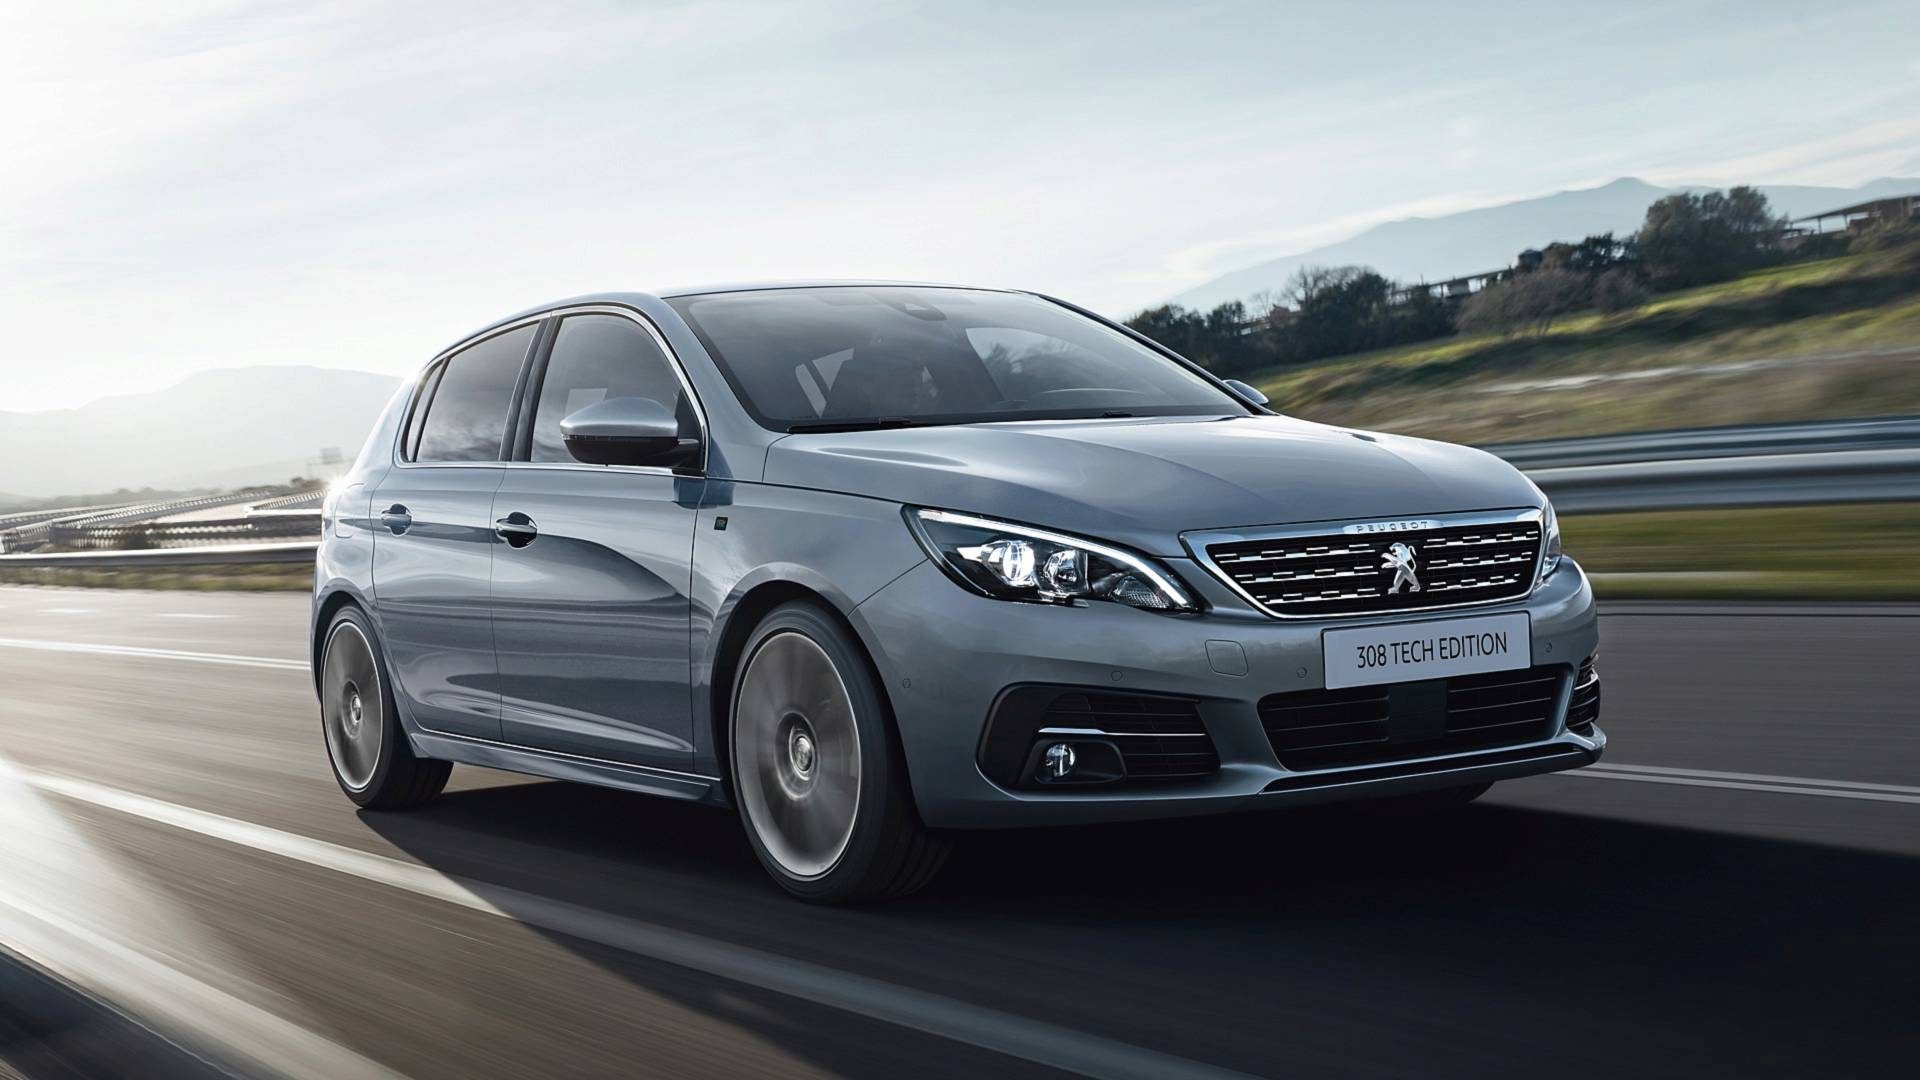 Peugeot 308 Adds New Tech Edition Model Connect France